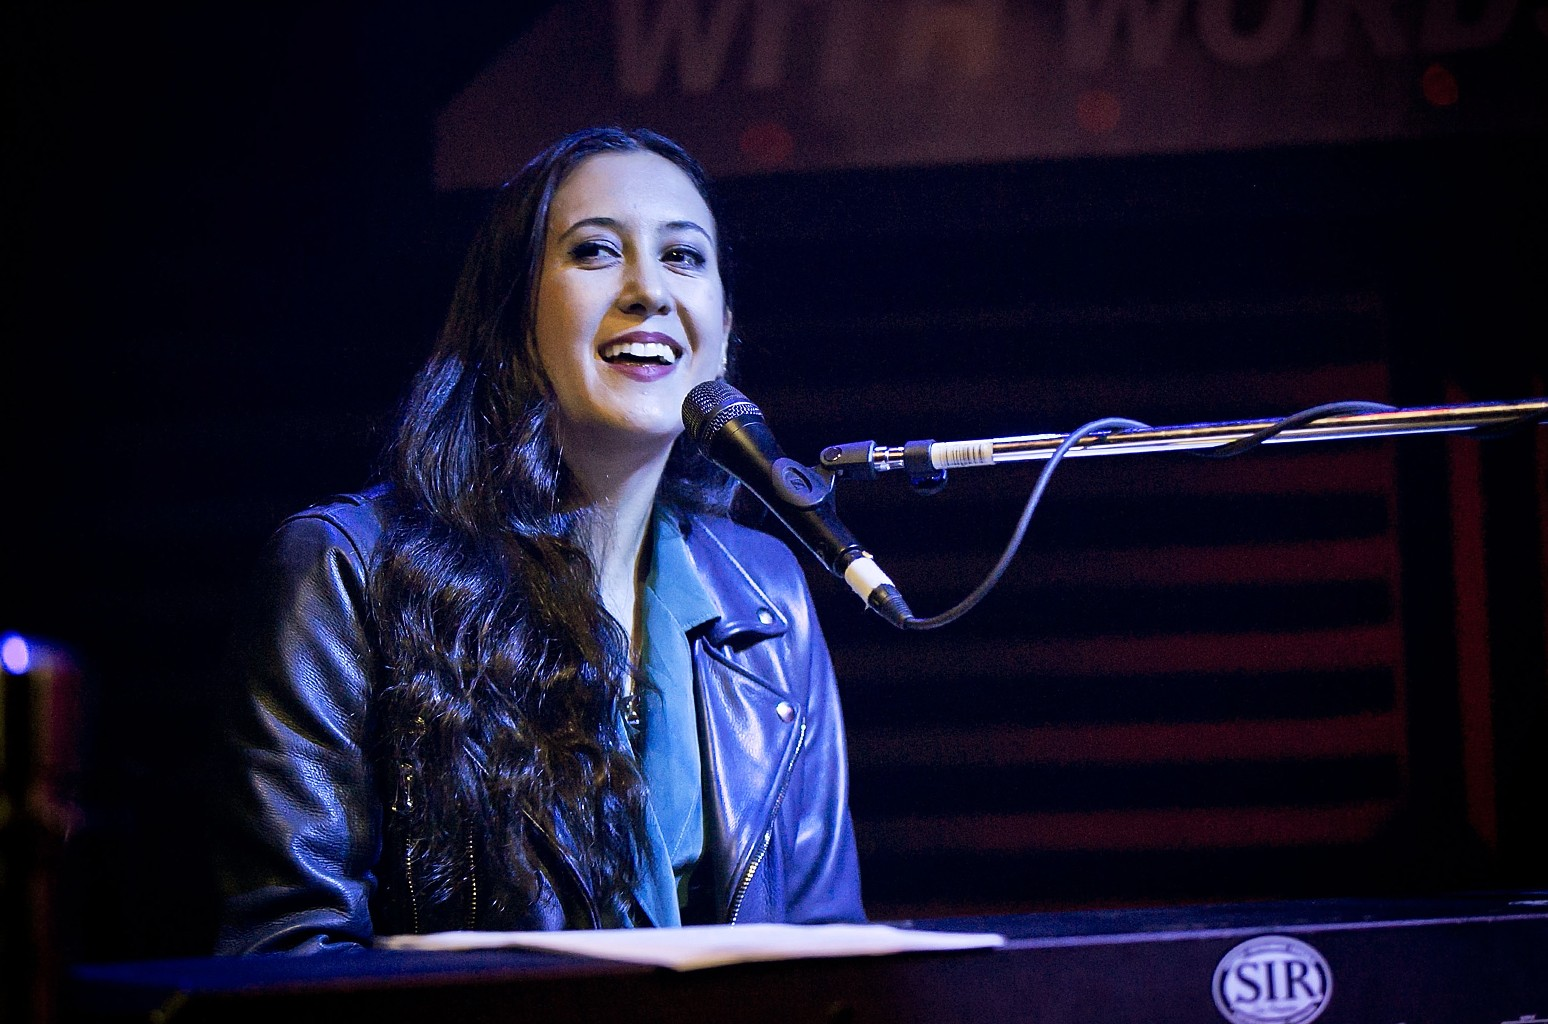 Vanessa Carlton performs at The Sayers Club on Sept. 15, 2015 in Hollywood, Calif.